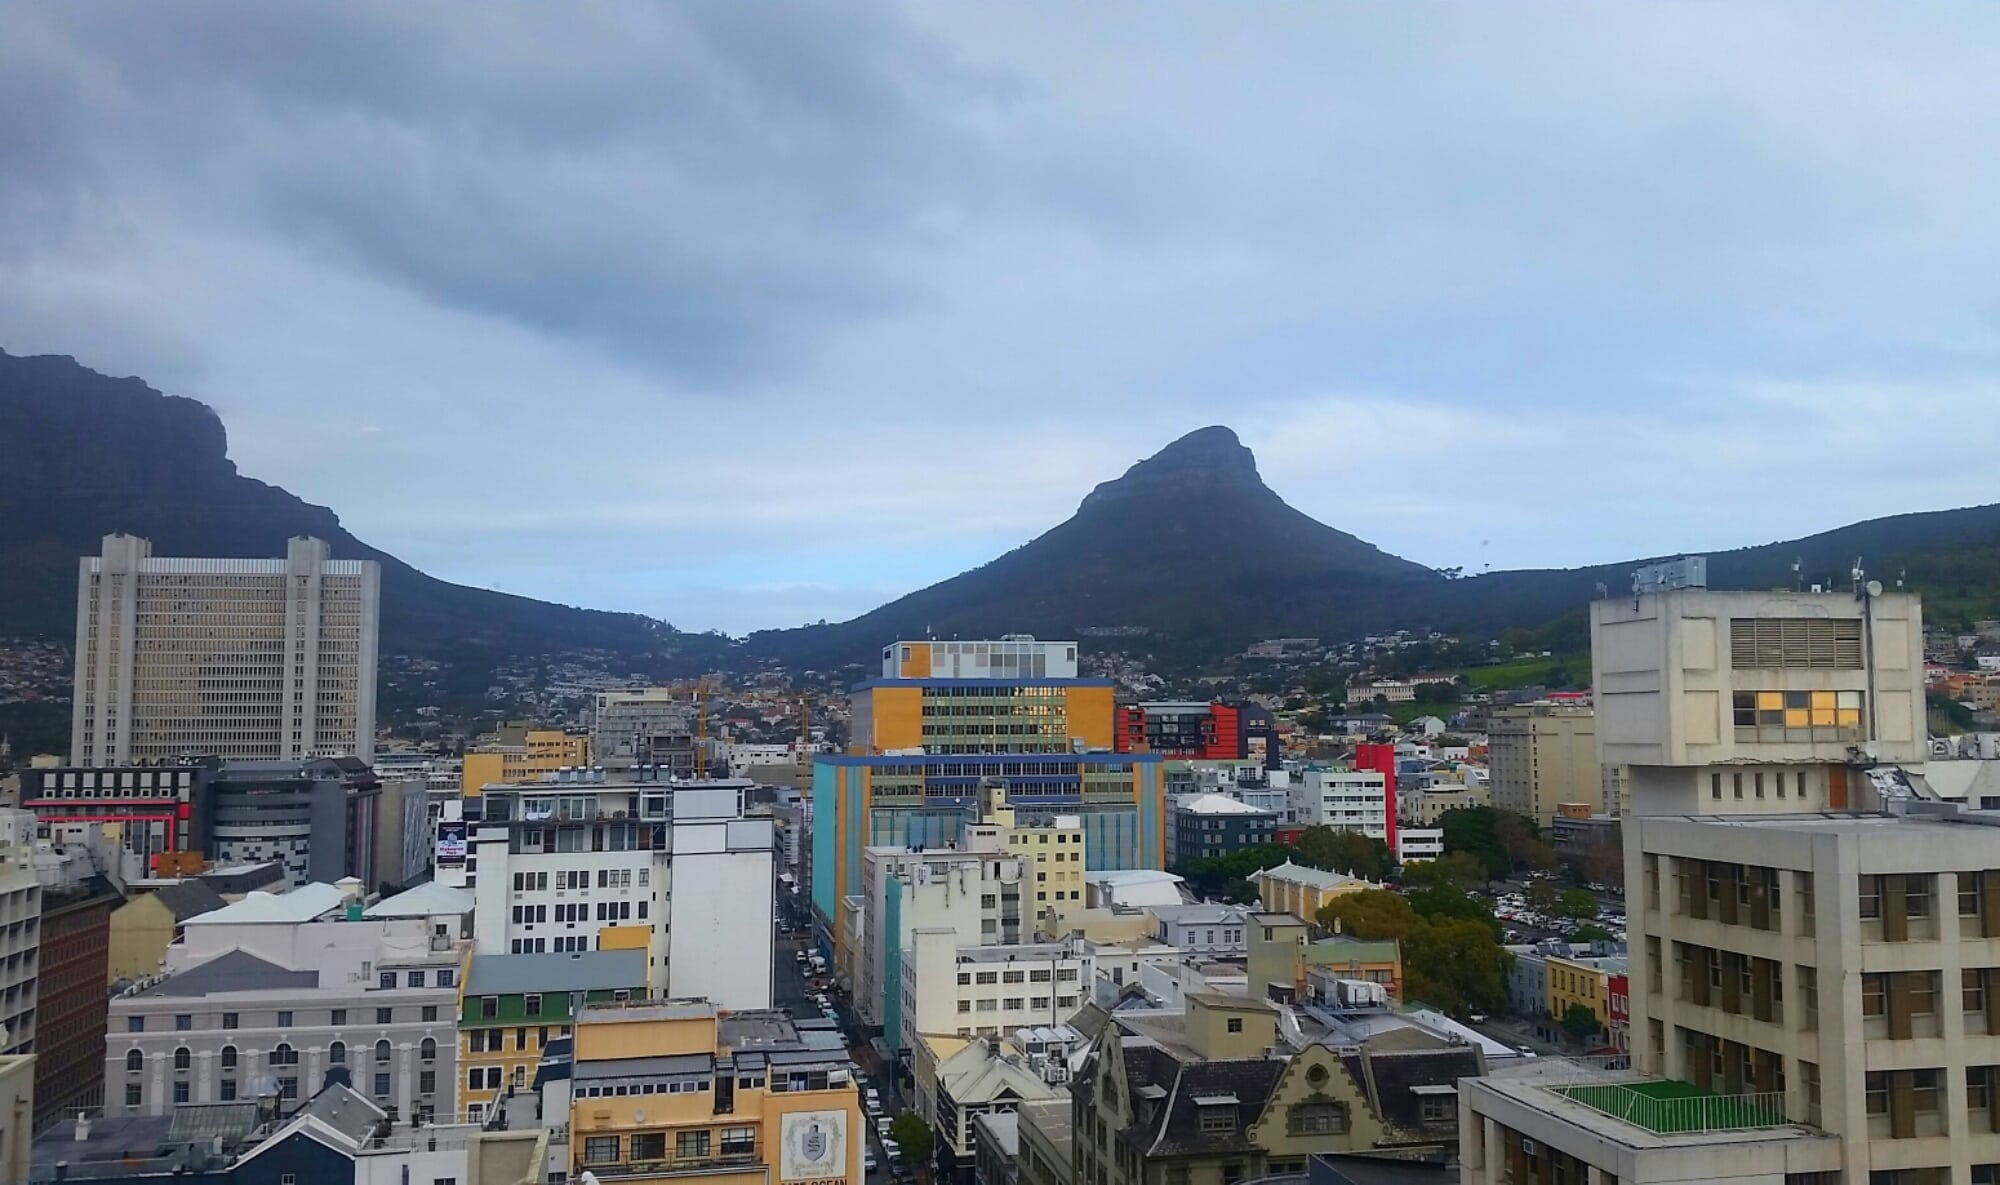 Staying At The Strand Tower Hotel In Cape Town  My Life. Quality Alexandra Hotel. Golden Mountain International Hotel. Thermenhotel Ronacher. La Casona De La Roza Hotel. Centara Grand Beach Hotel. Hotel Villa Degli Angeli. Cairns Luxury Apartments – Harbourlights Complex. Royal Hotel